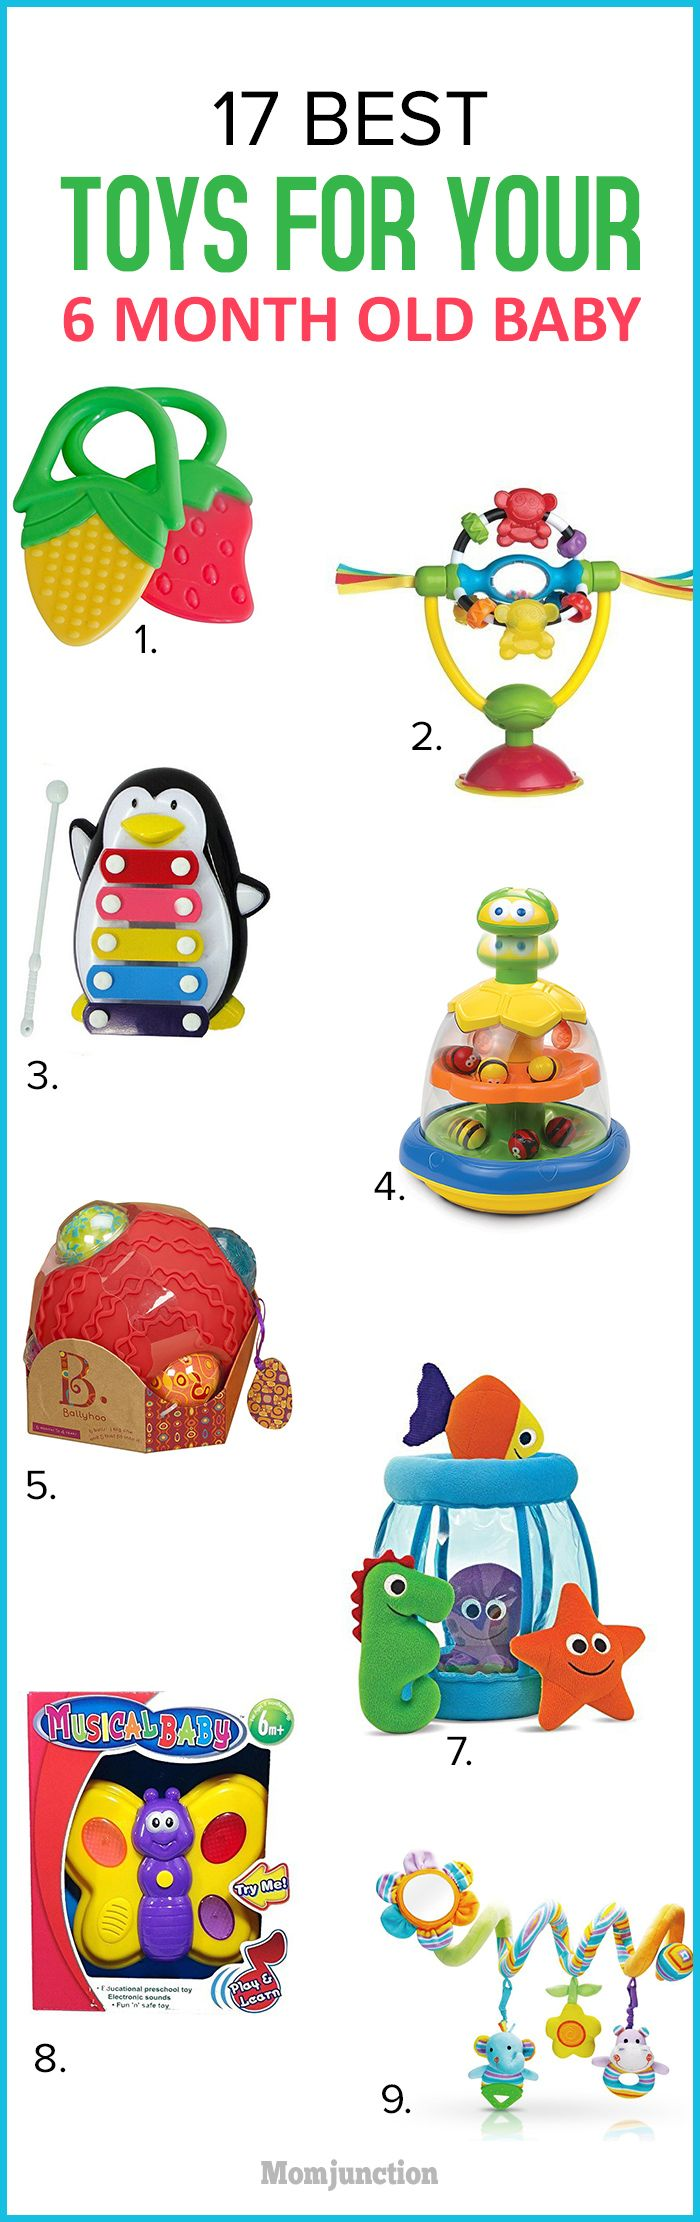 Educational Baby Toys: The Complete List of the Best Toys For Your ...